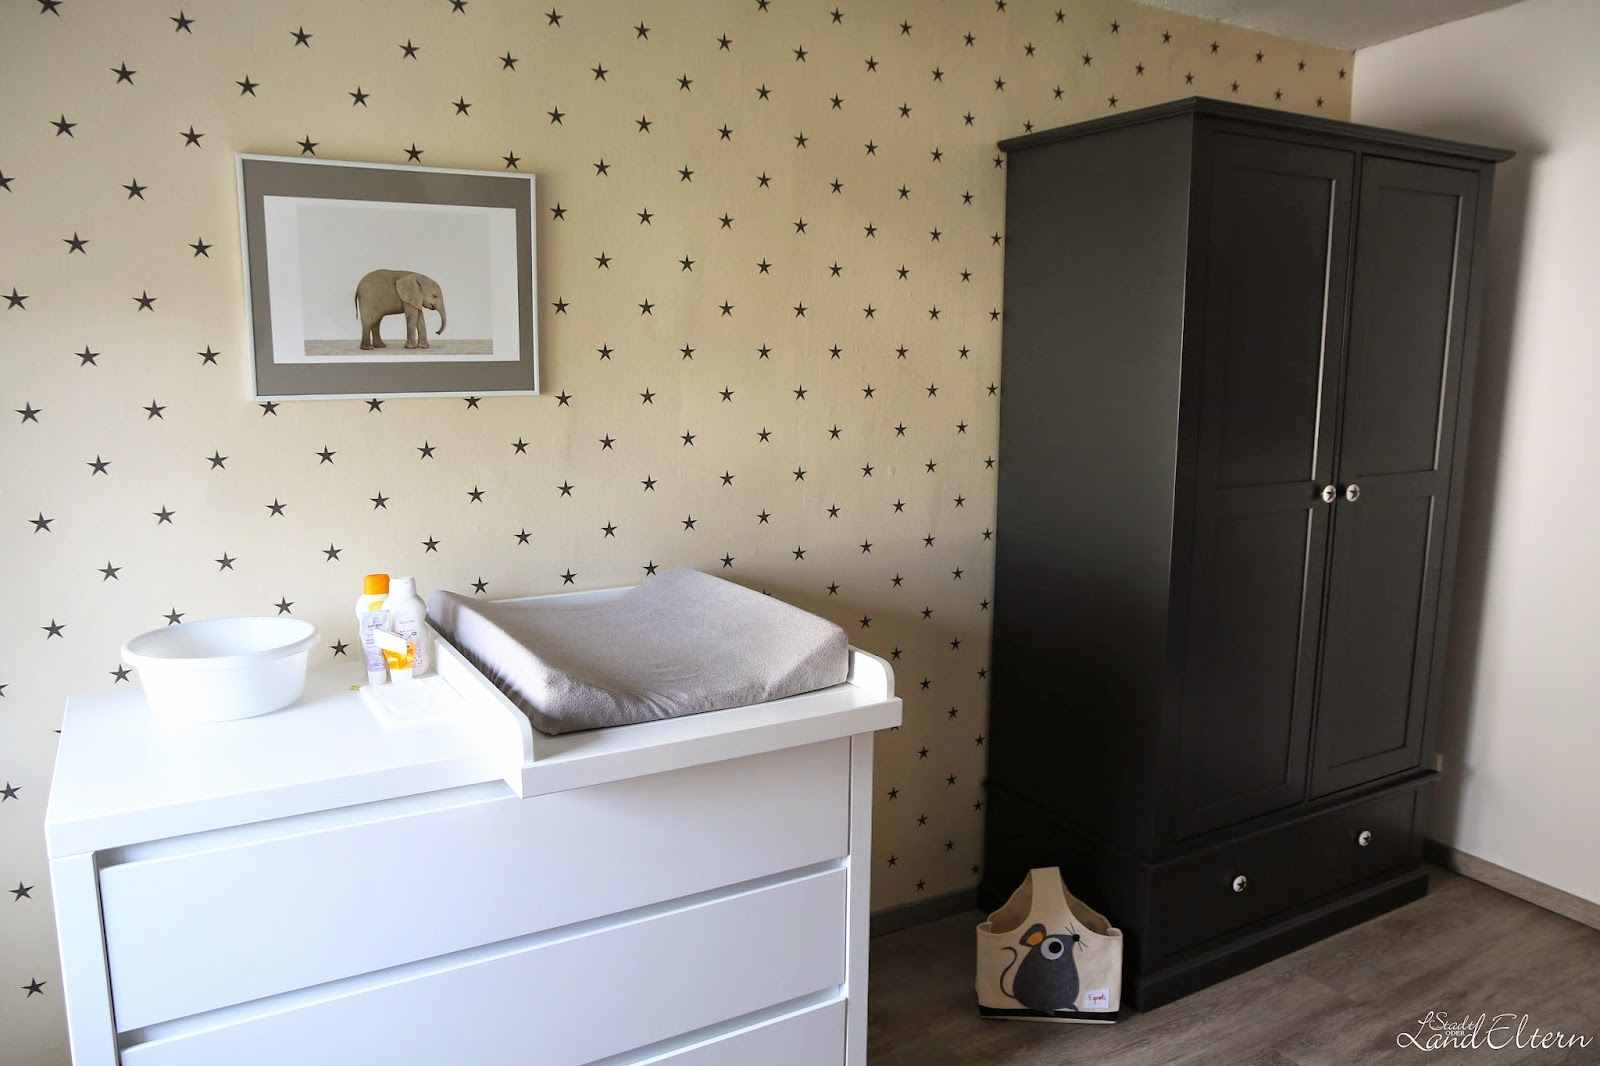 einblick ins kinderzimmer. Black Bedroom Furniture Sets. Home Design Ideas